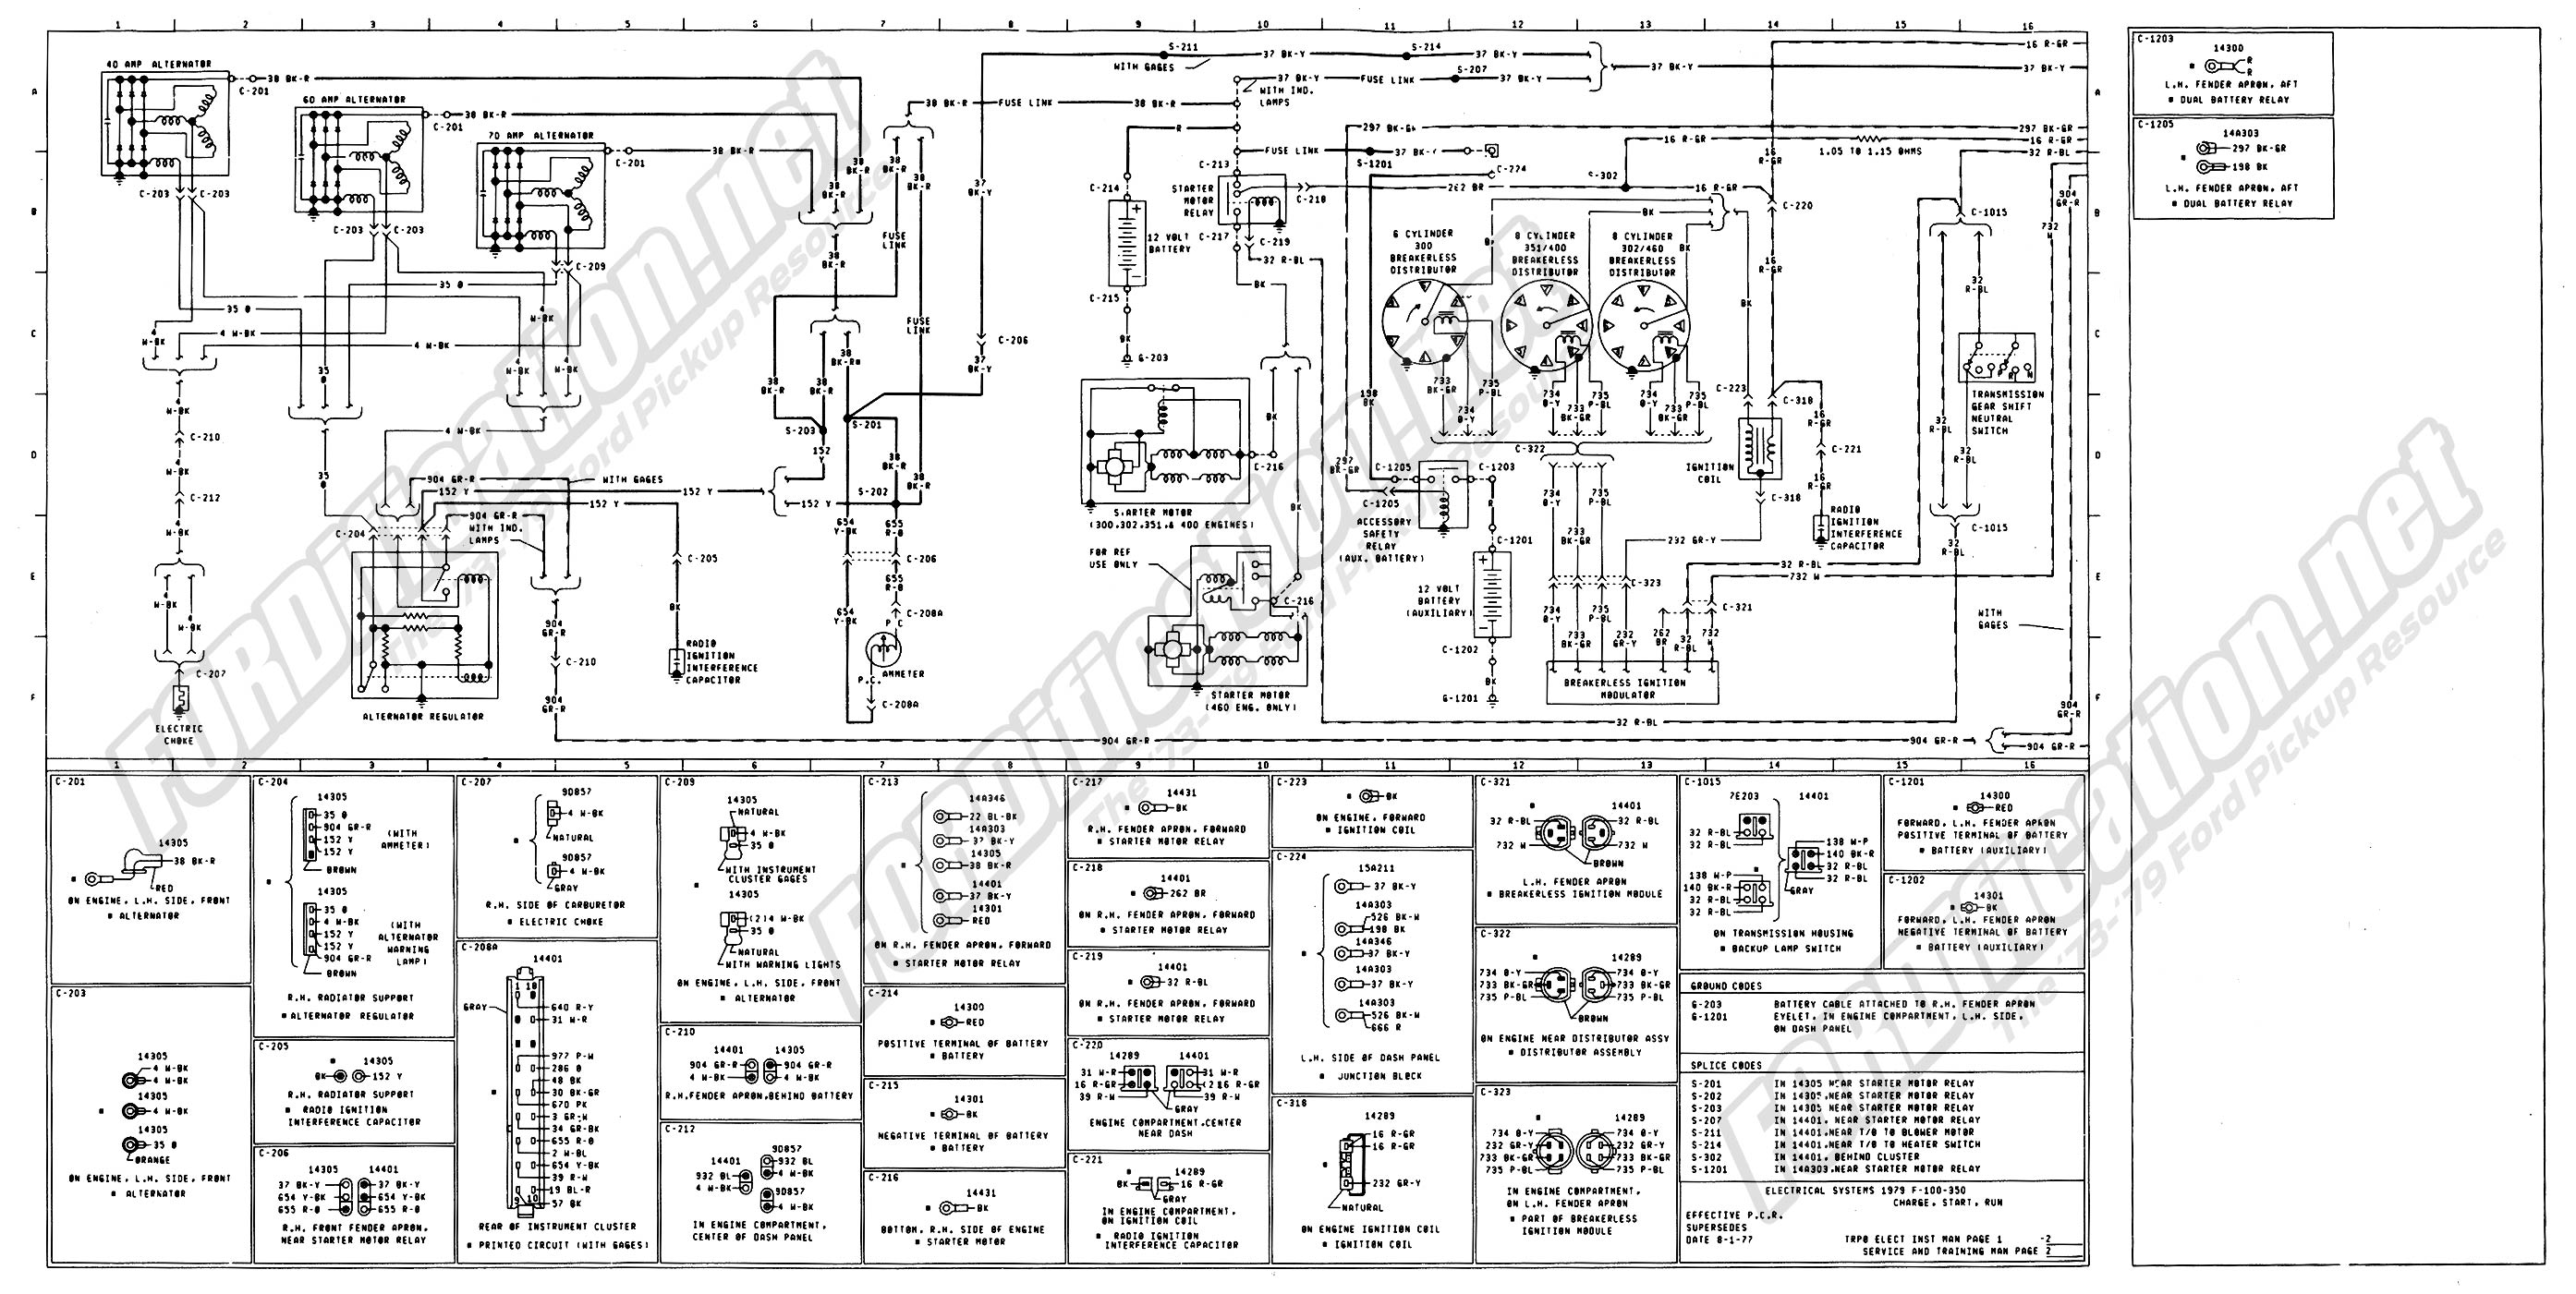 wiring_79master_2of9 1973 1979 ford truck wiring diagrams & schematics fordification net 1999 F150 Radio Wiring Diagram at sewacar.co